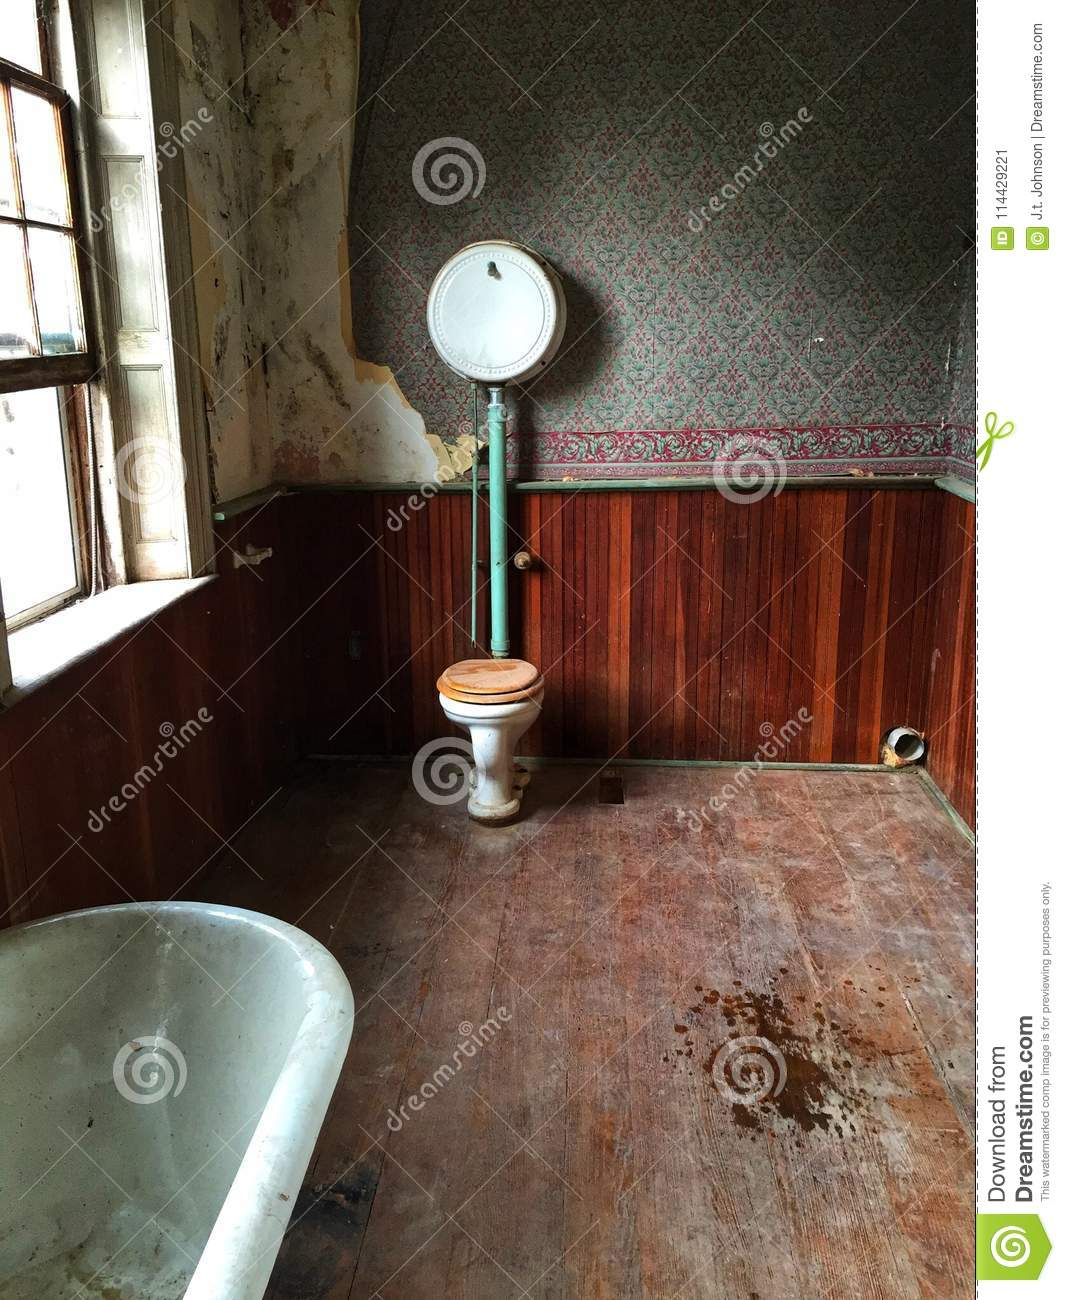 Historical Commode stock image. Image of 1900s, antique - 114429221